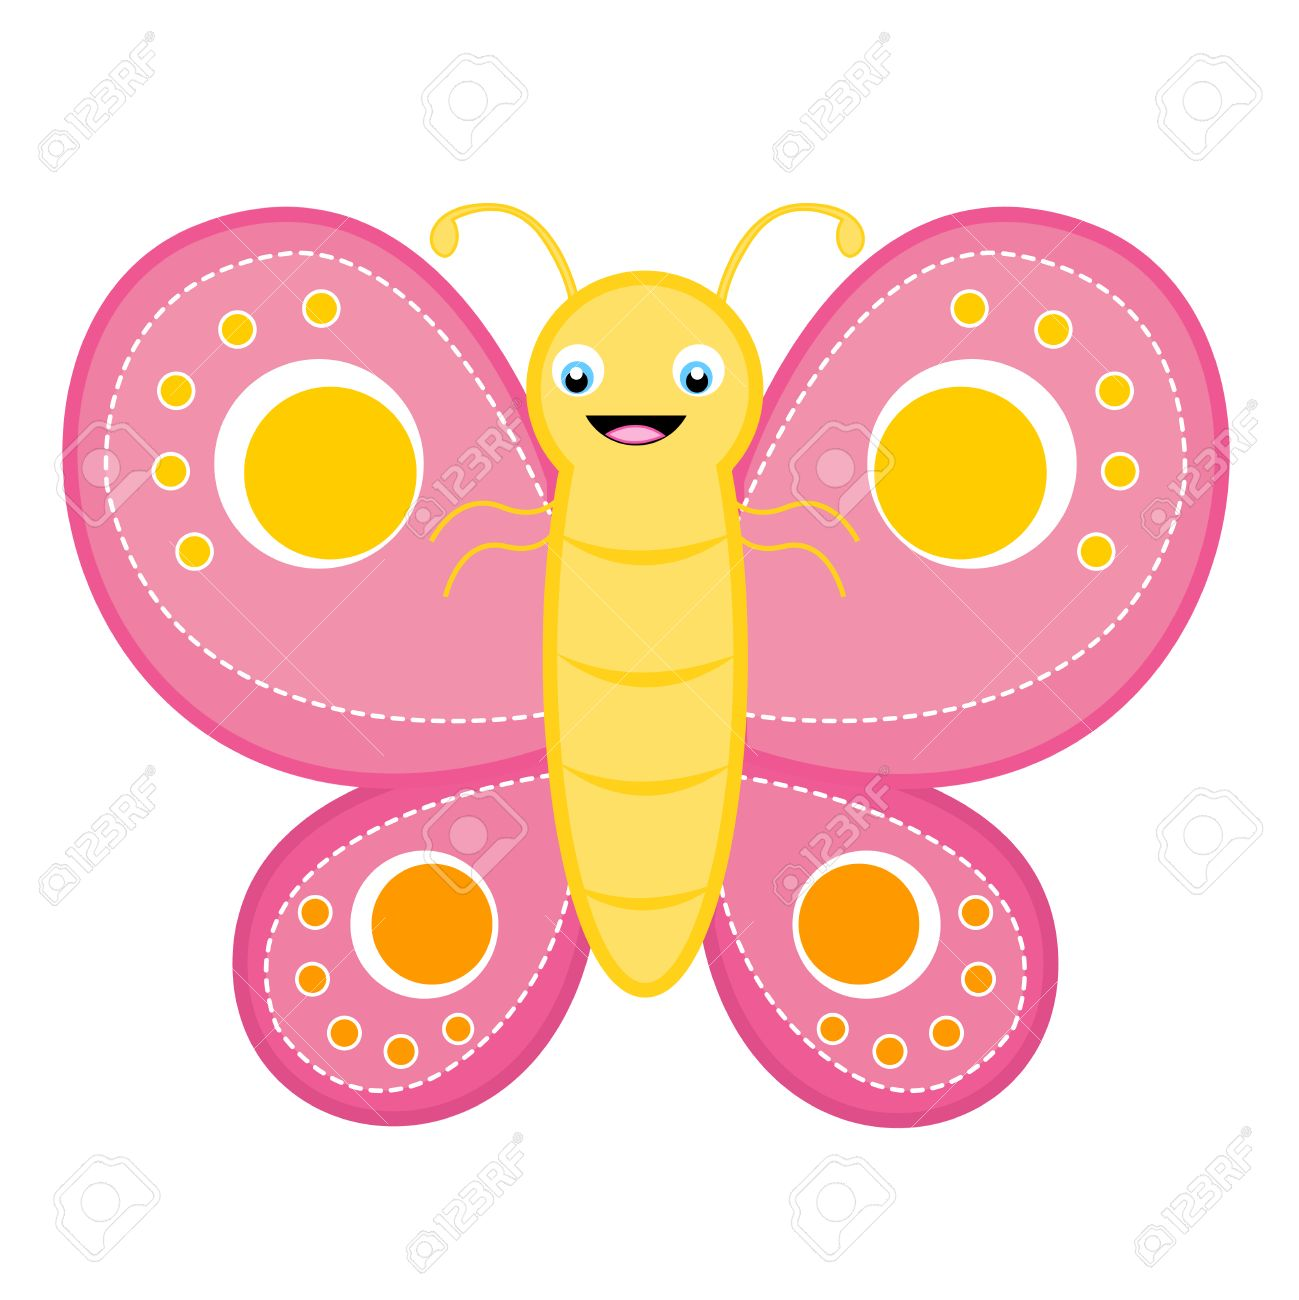 cute happy smiling butterfly clip art isolated on white background rh 123rf com butterfly clipart images butterfly clipart pictures